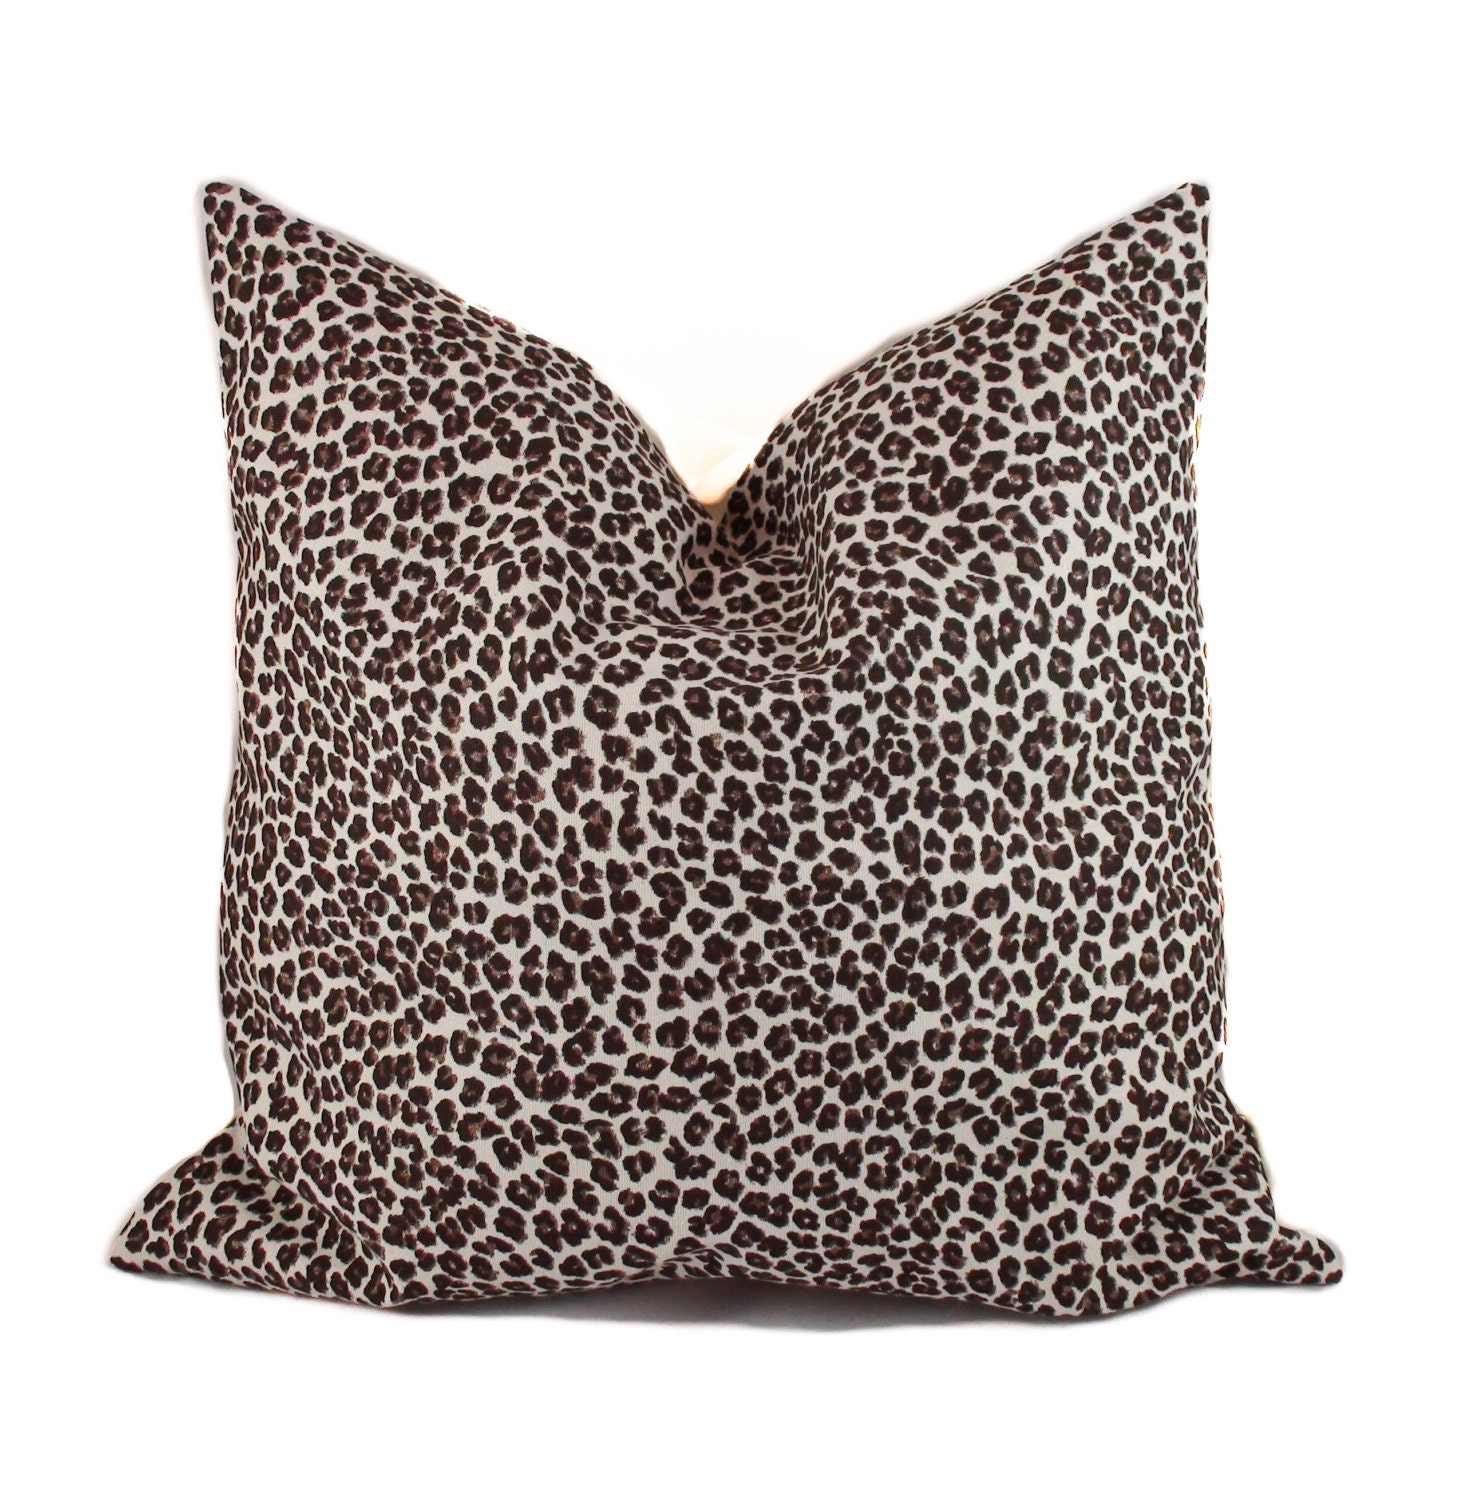 Animal Pillows : Leopard pillow 18x18 Animal print pillow Decorative pillow